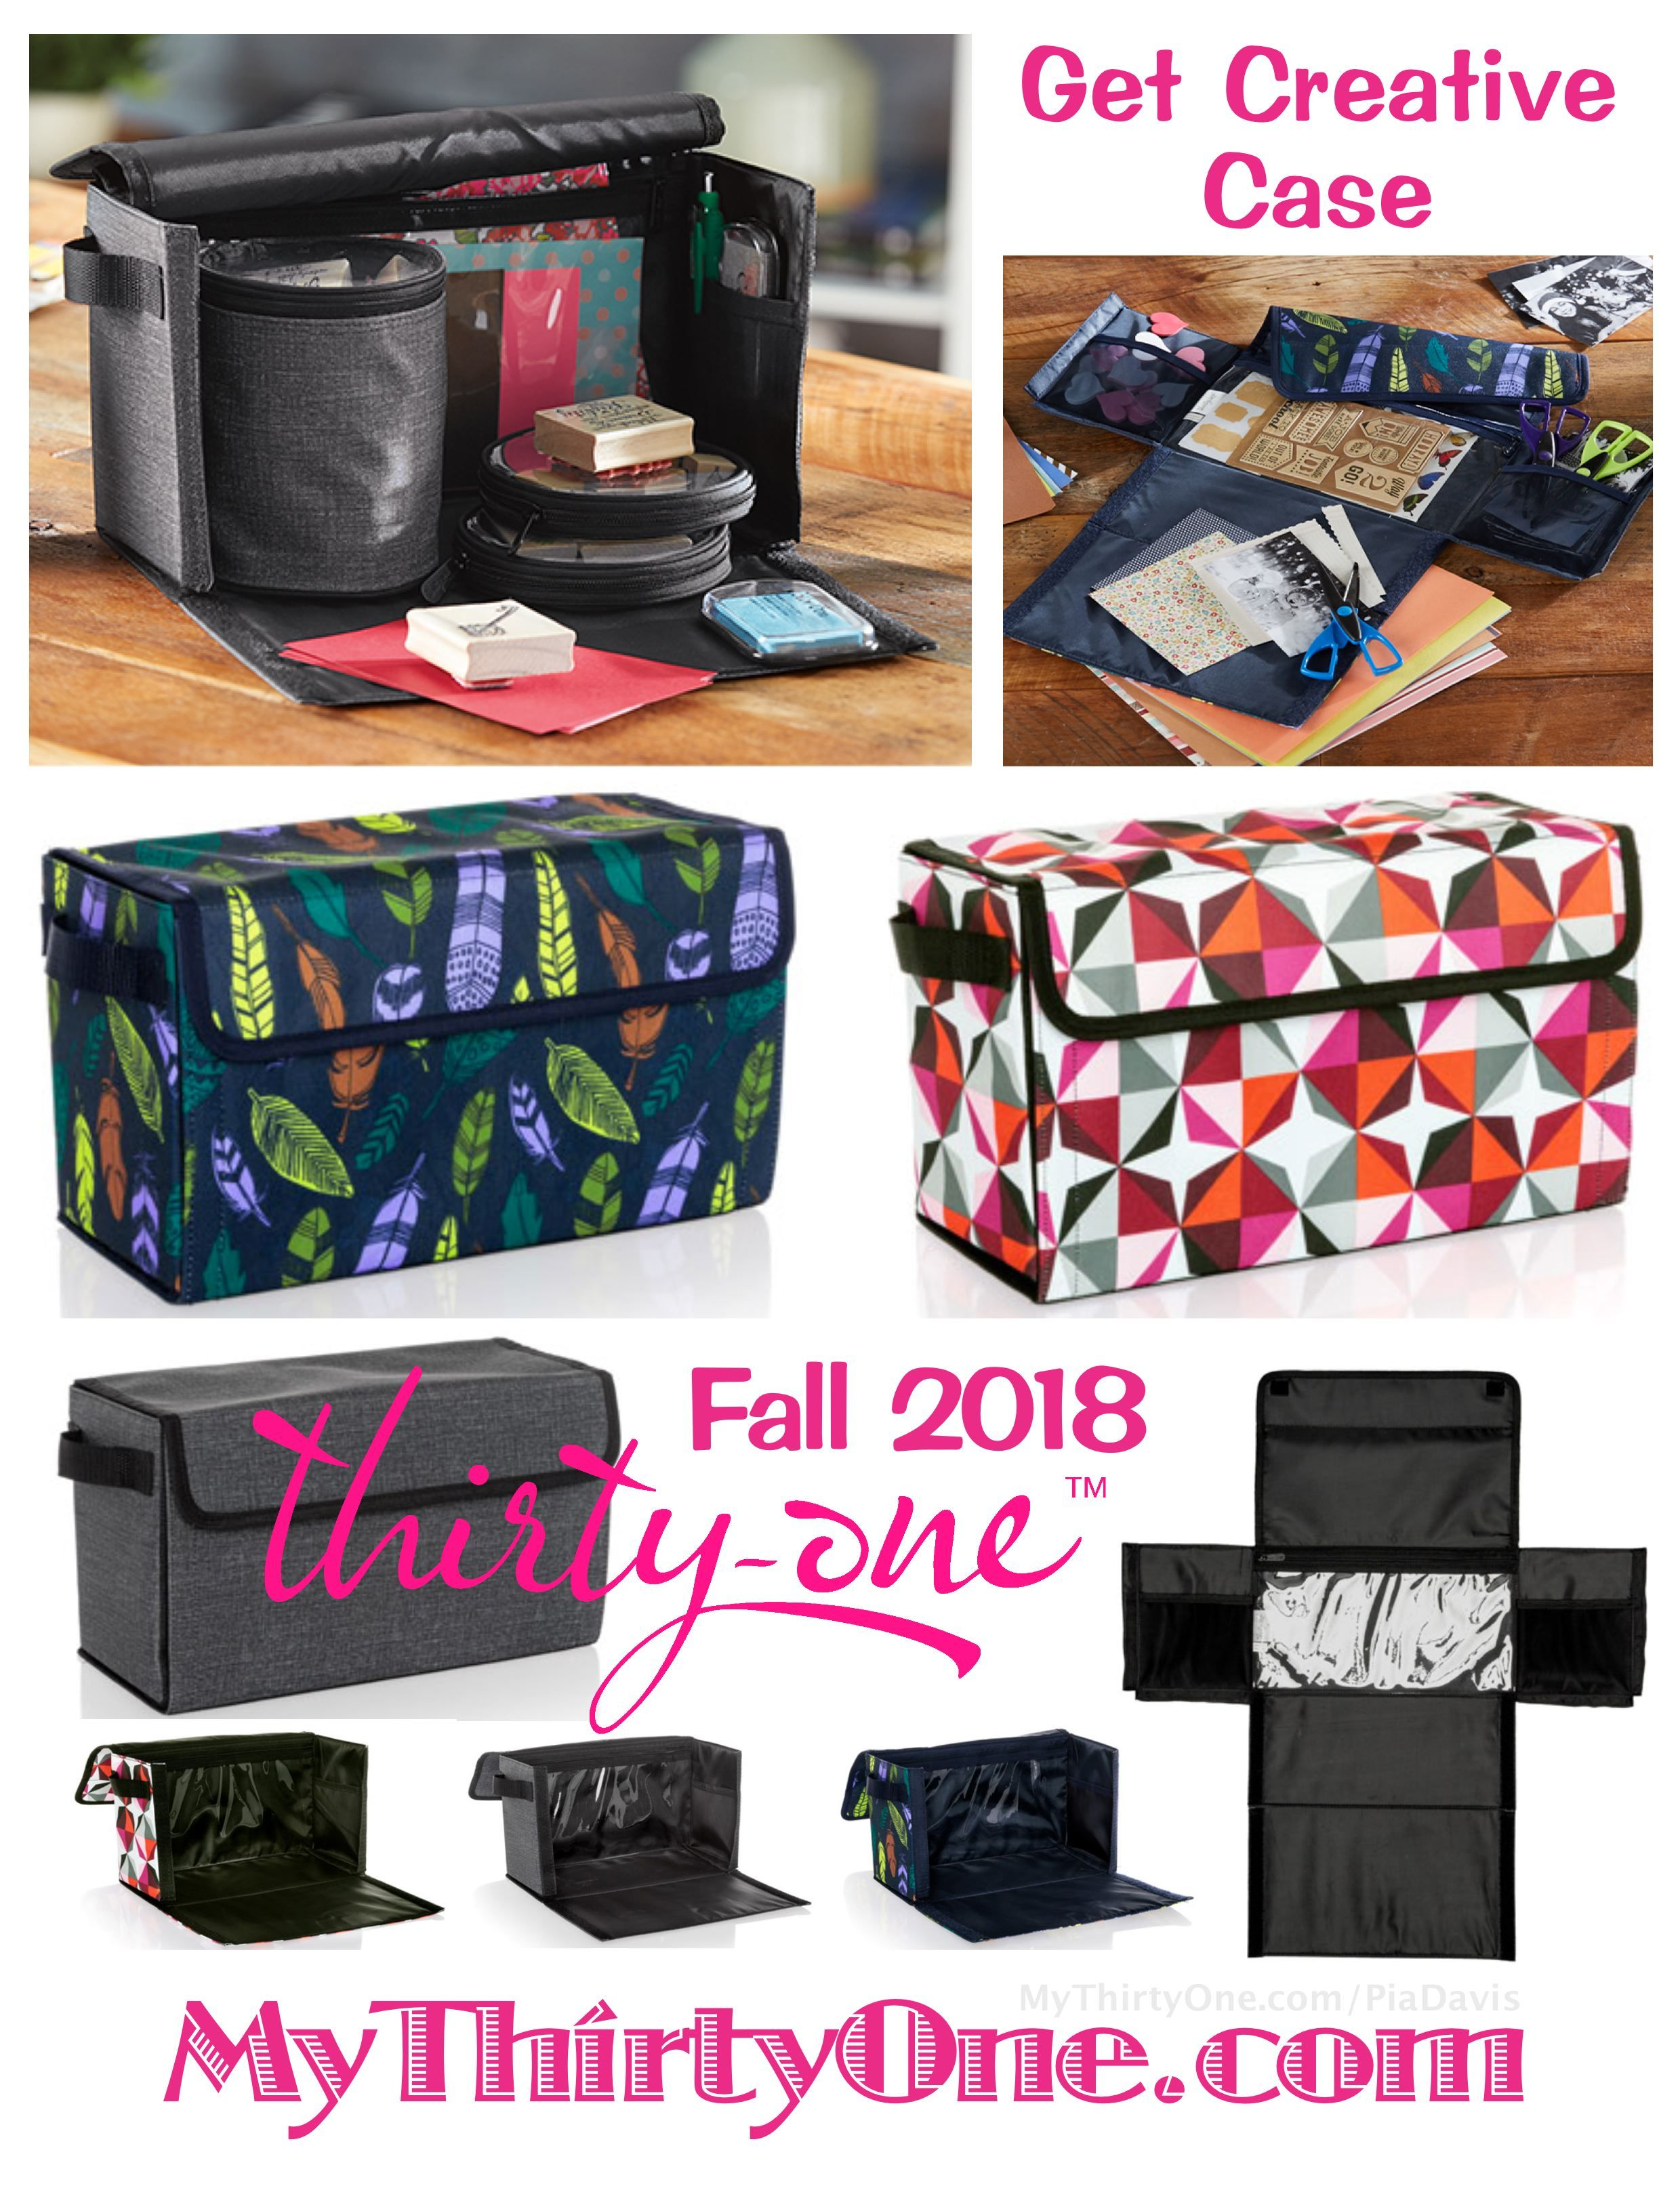 b526ad392715 #31 GET CREATIVE CASE - Fall 2018 - All three new Thirty-One Gifts Craft  Totes come in Deco Diamond, Falling Feathers & Charcoal Crosshatch.